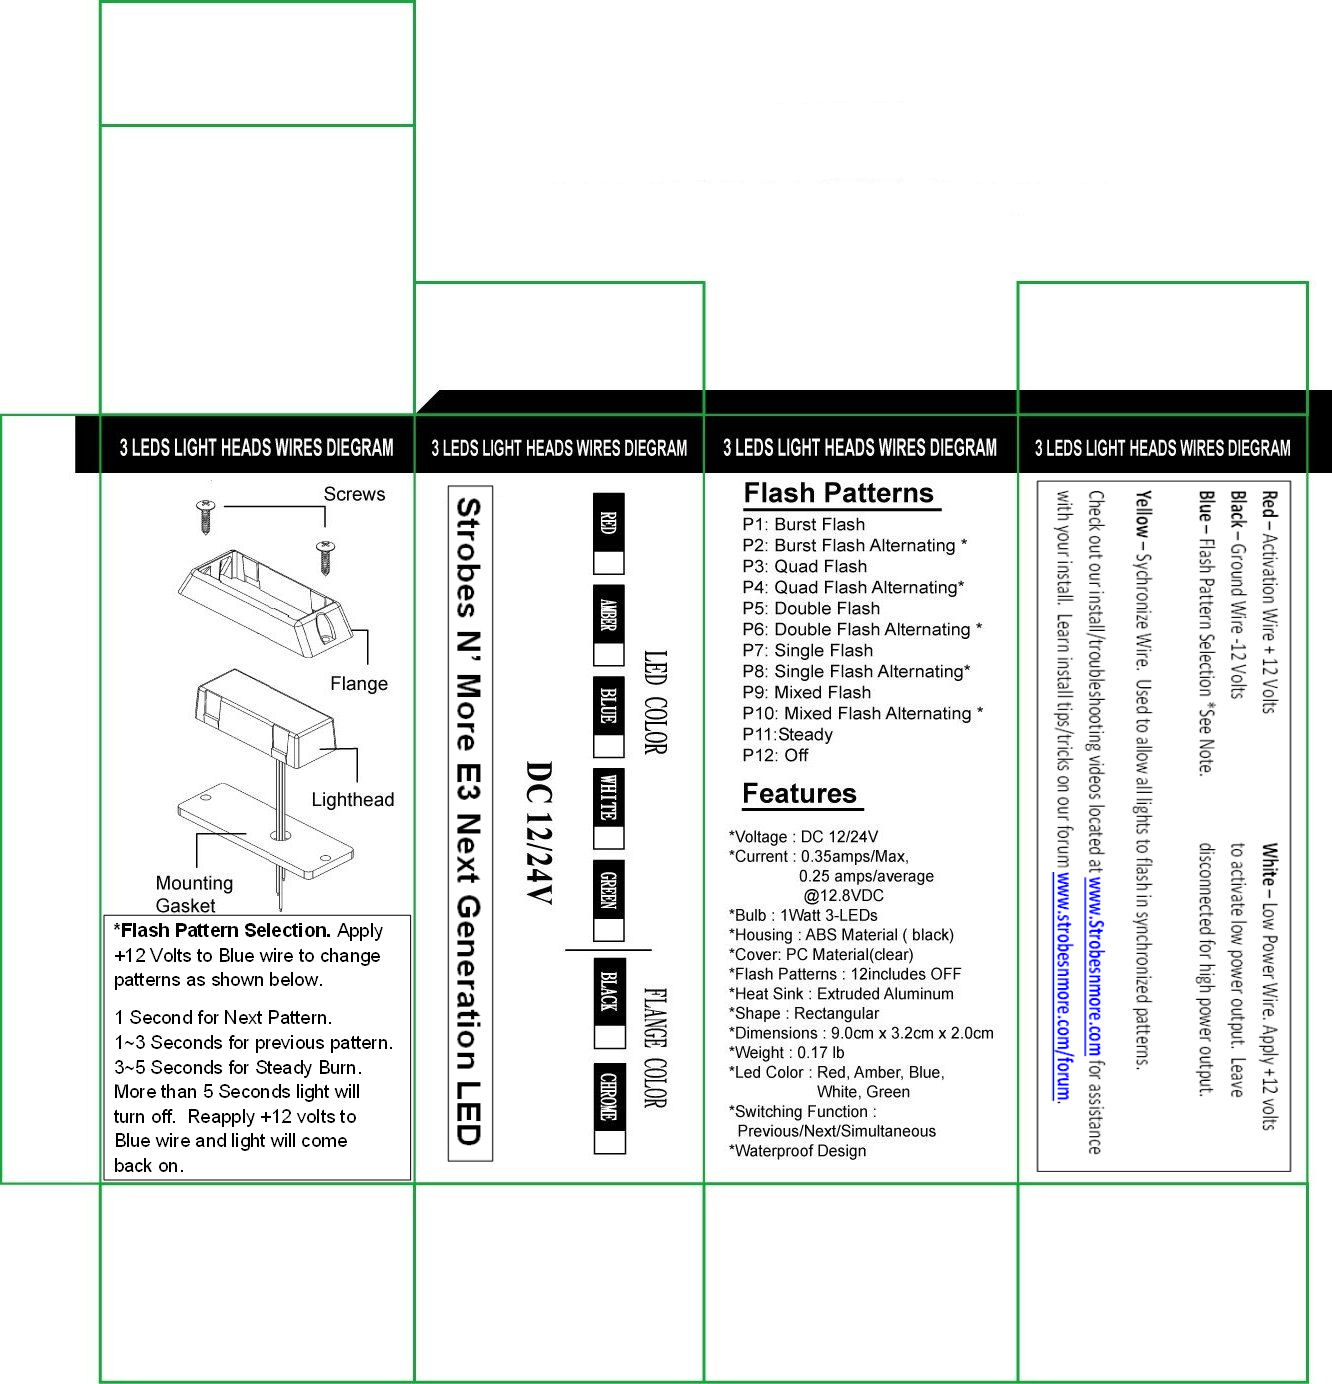 awesome wiring diagram whelen edge lfl picture collection rh suaiphone org Whelen Strobe Light Wiring Diagram Whelen MPC01 Wiring-Diagram